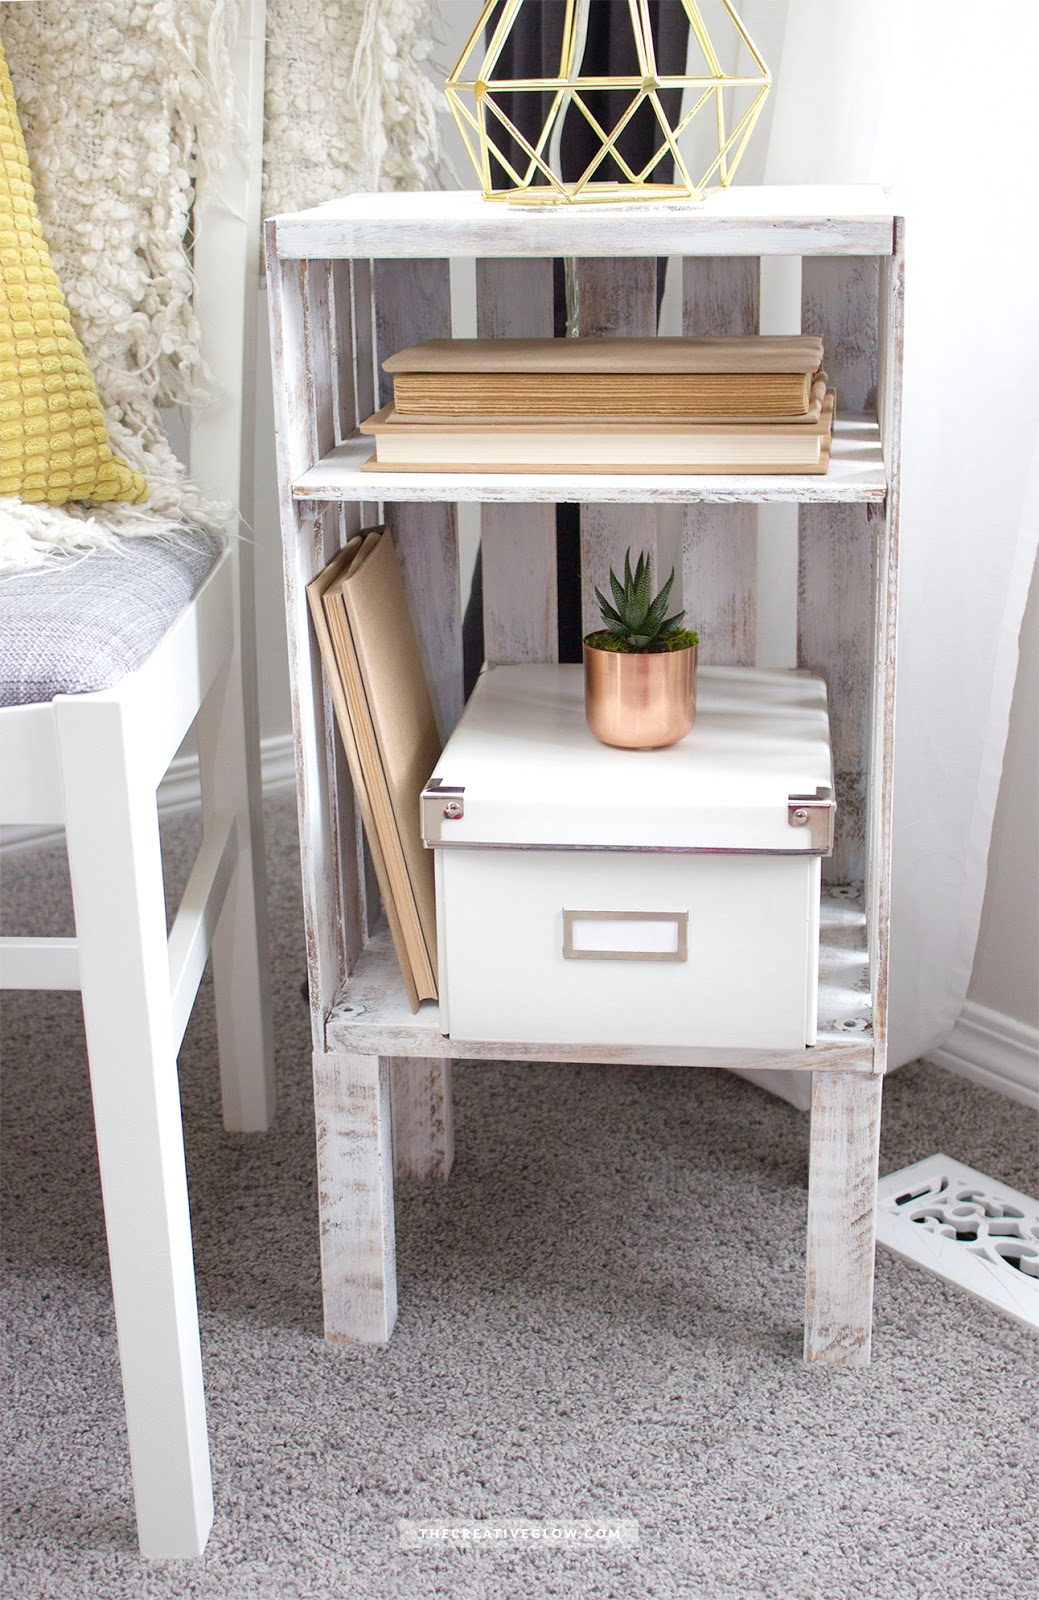 You Can Make These Rustic Side Tables For Any Room That May Need A Side  Table: Nightstands For The Bedroom, End Tables For The Living Room Sofa, ...